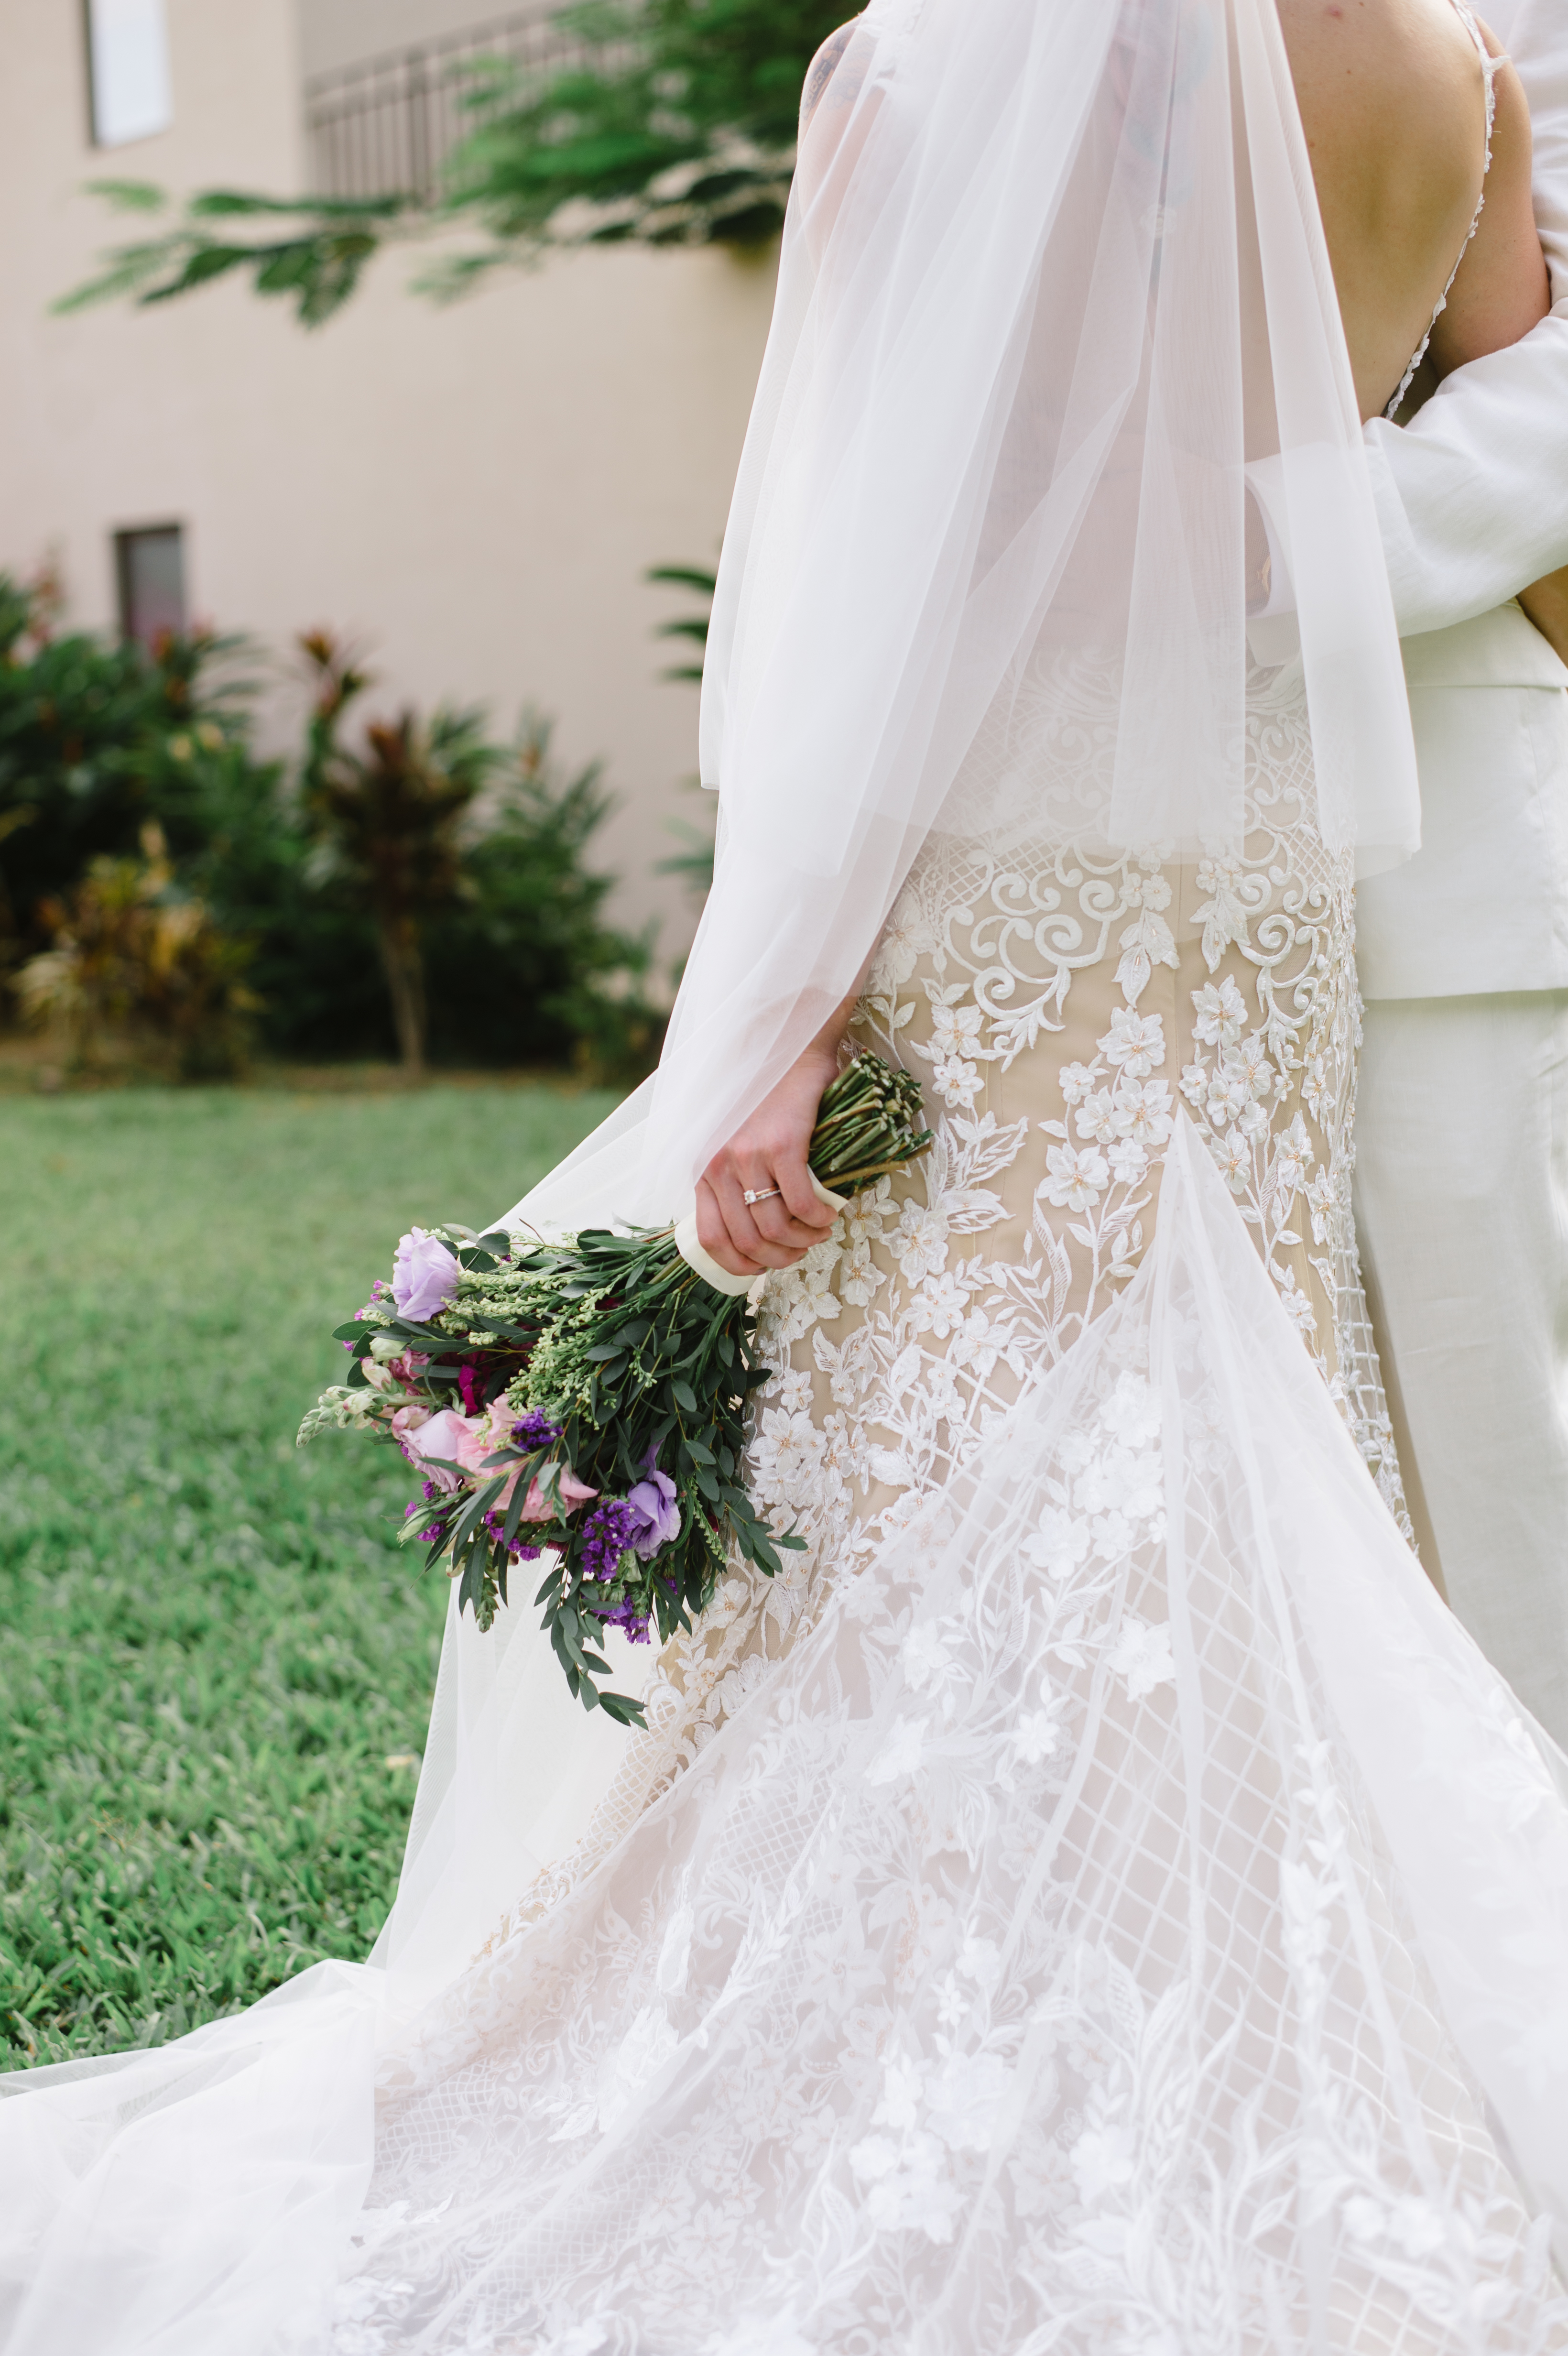 Tulle, organza and lace wedding gown.